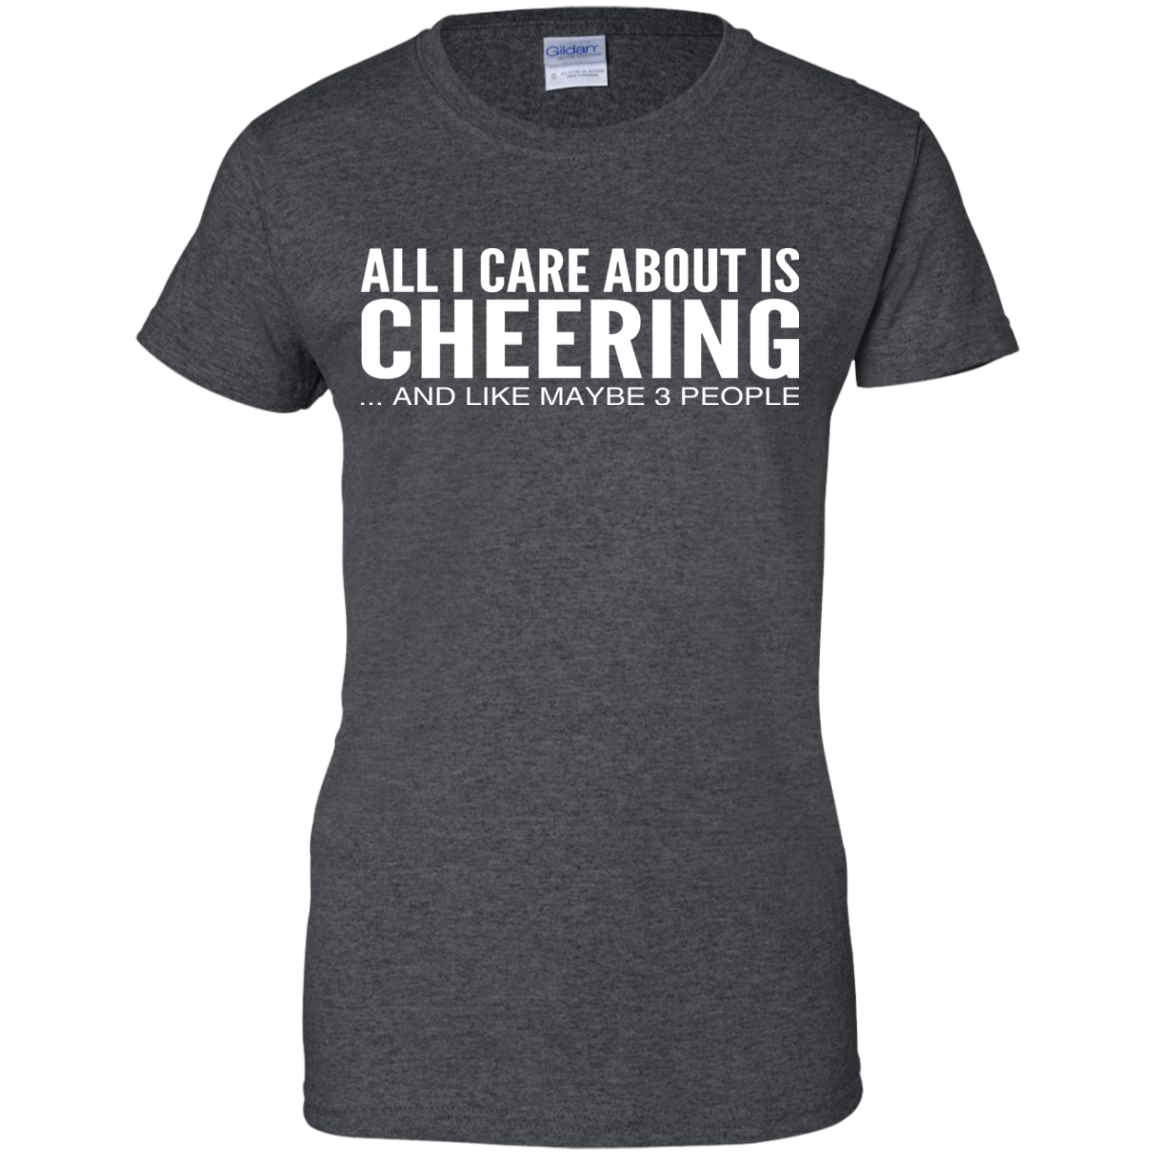 All I Care About Is Cheering And Like Maybe 3 People Ladies Tees